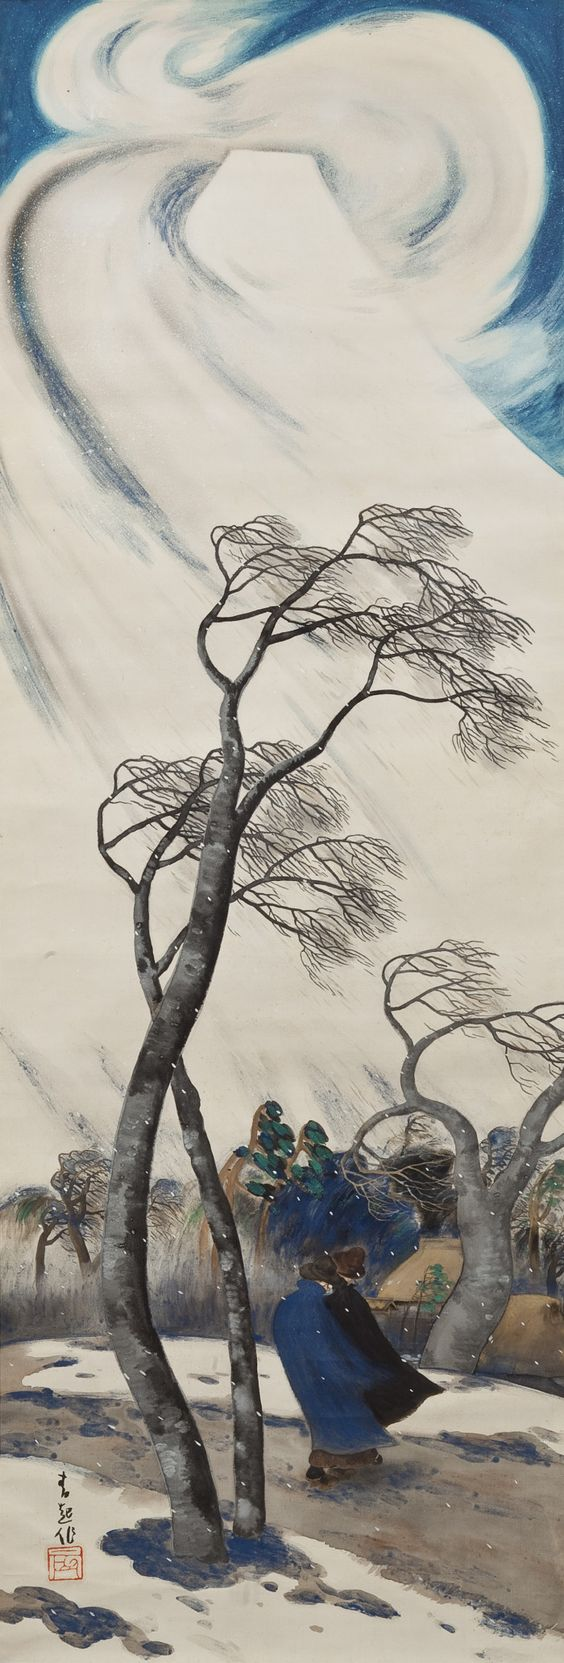 Wind Blowing from Mt. Fuji by Hosokibara Seiki (1885-1958) Japan